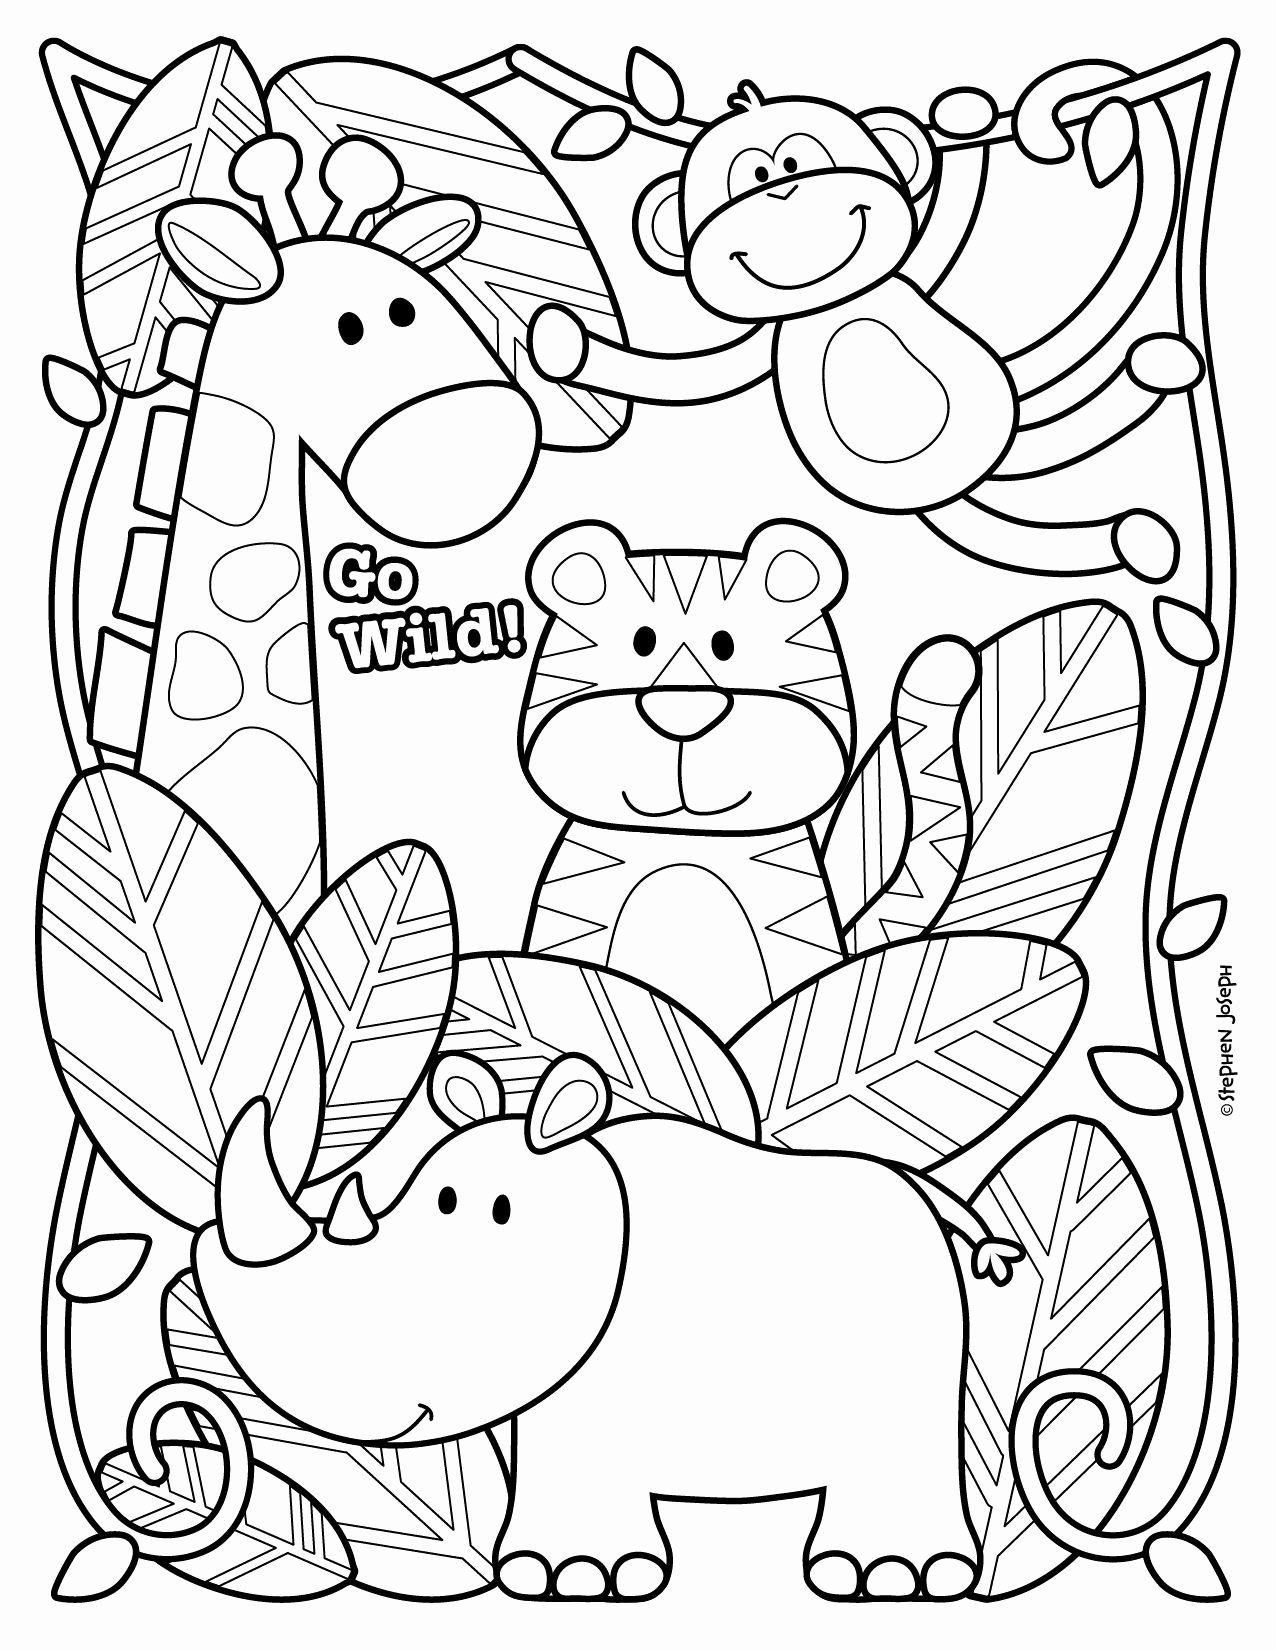 free printable zoo coloring pages free printable zoo coloring pages for kids zoo free printable pages coloring